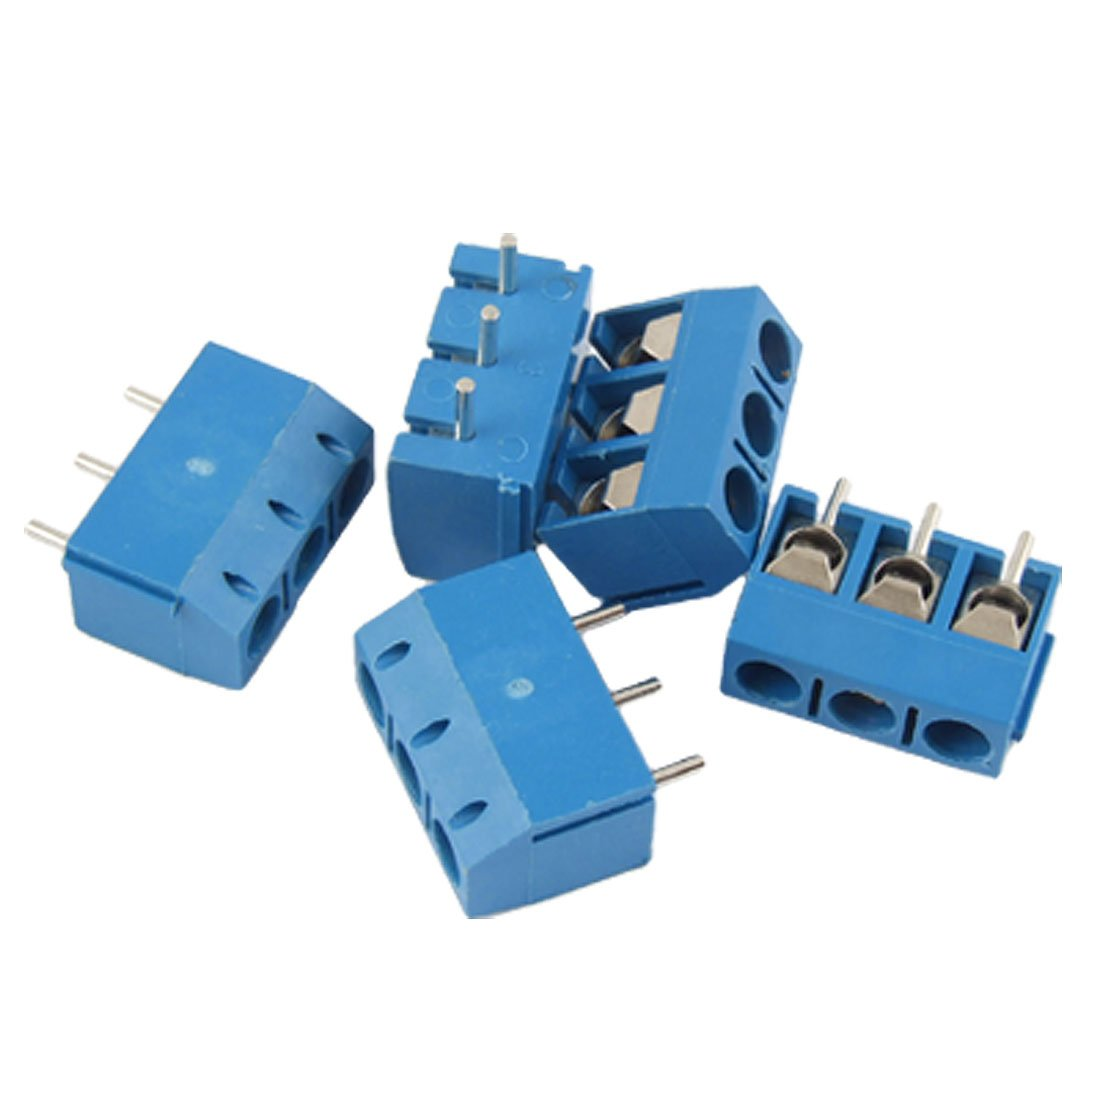 MYLB-5 Pcs 3 Position PCB Mount Terminal Block Connector 16A 5 pcs 400v 20a 7 position screw barrier terminal block bar connector replacement